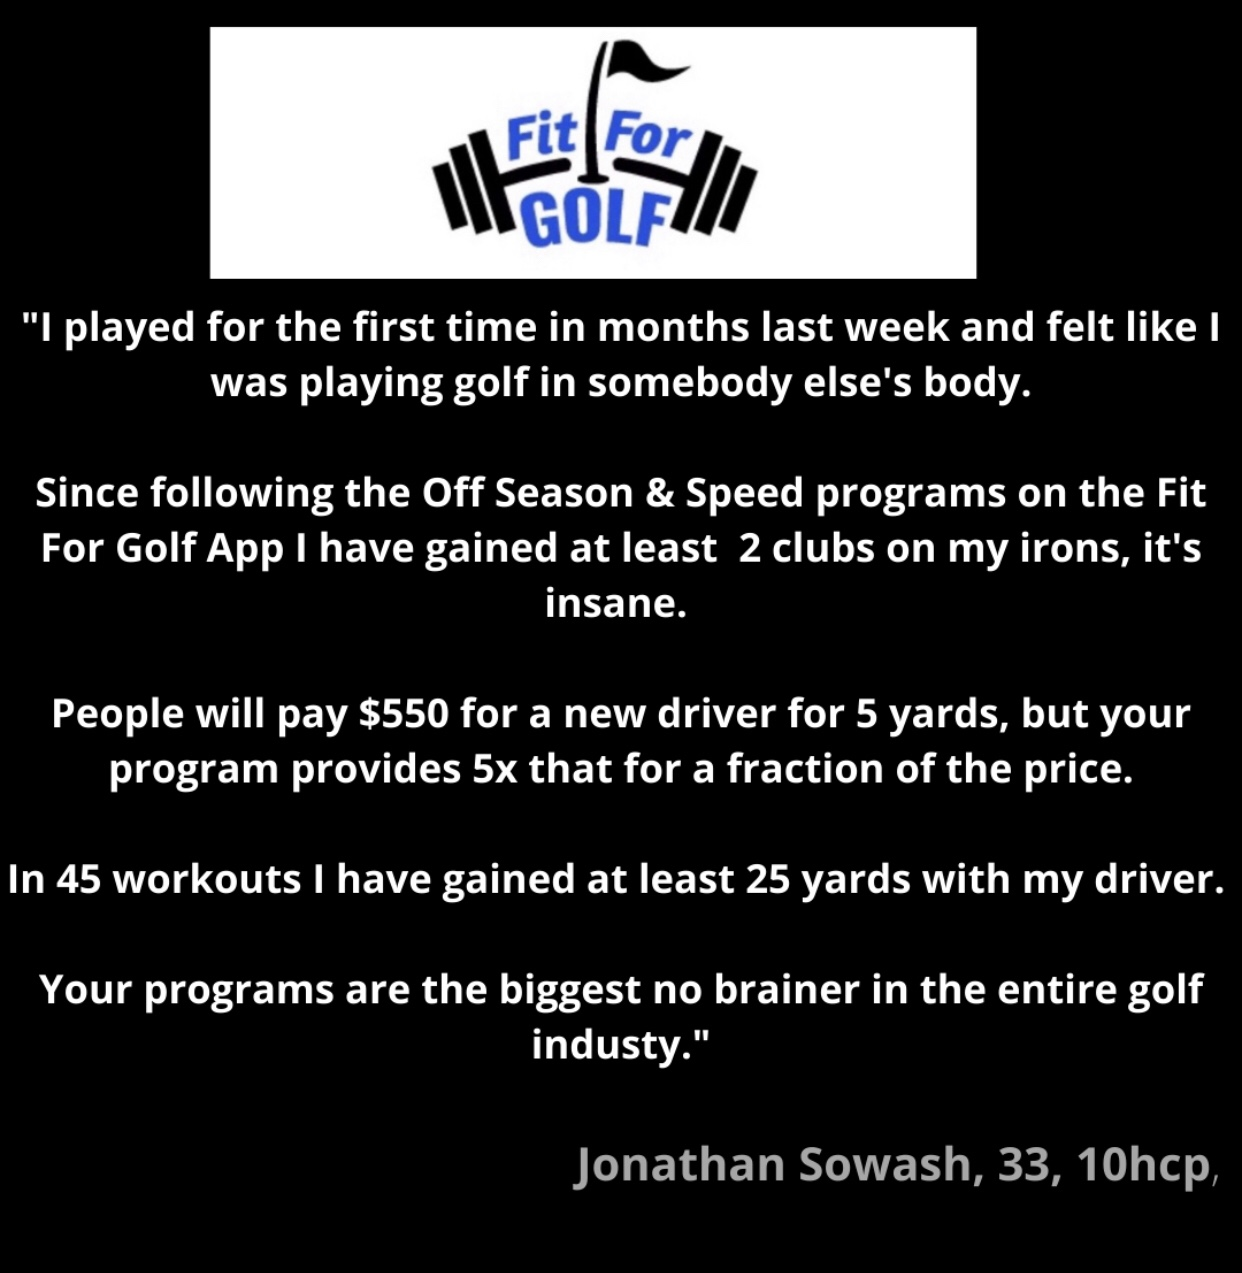 Fit For Golf User Gains 25 Yards With Driver